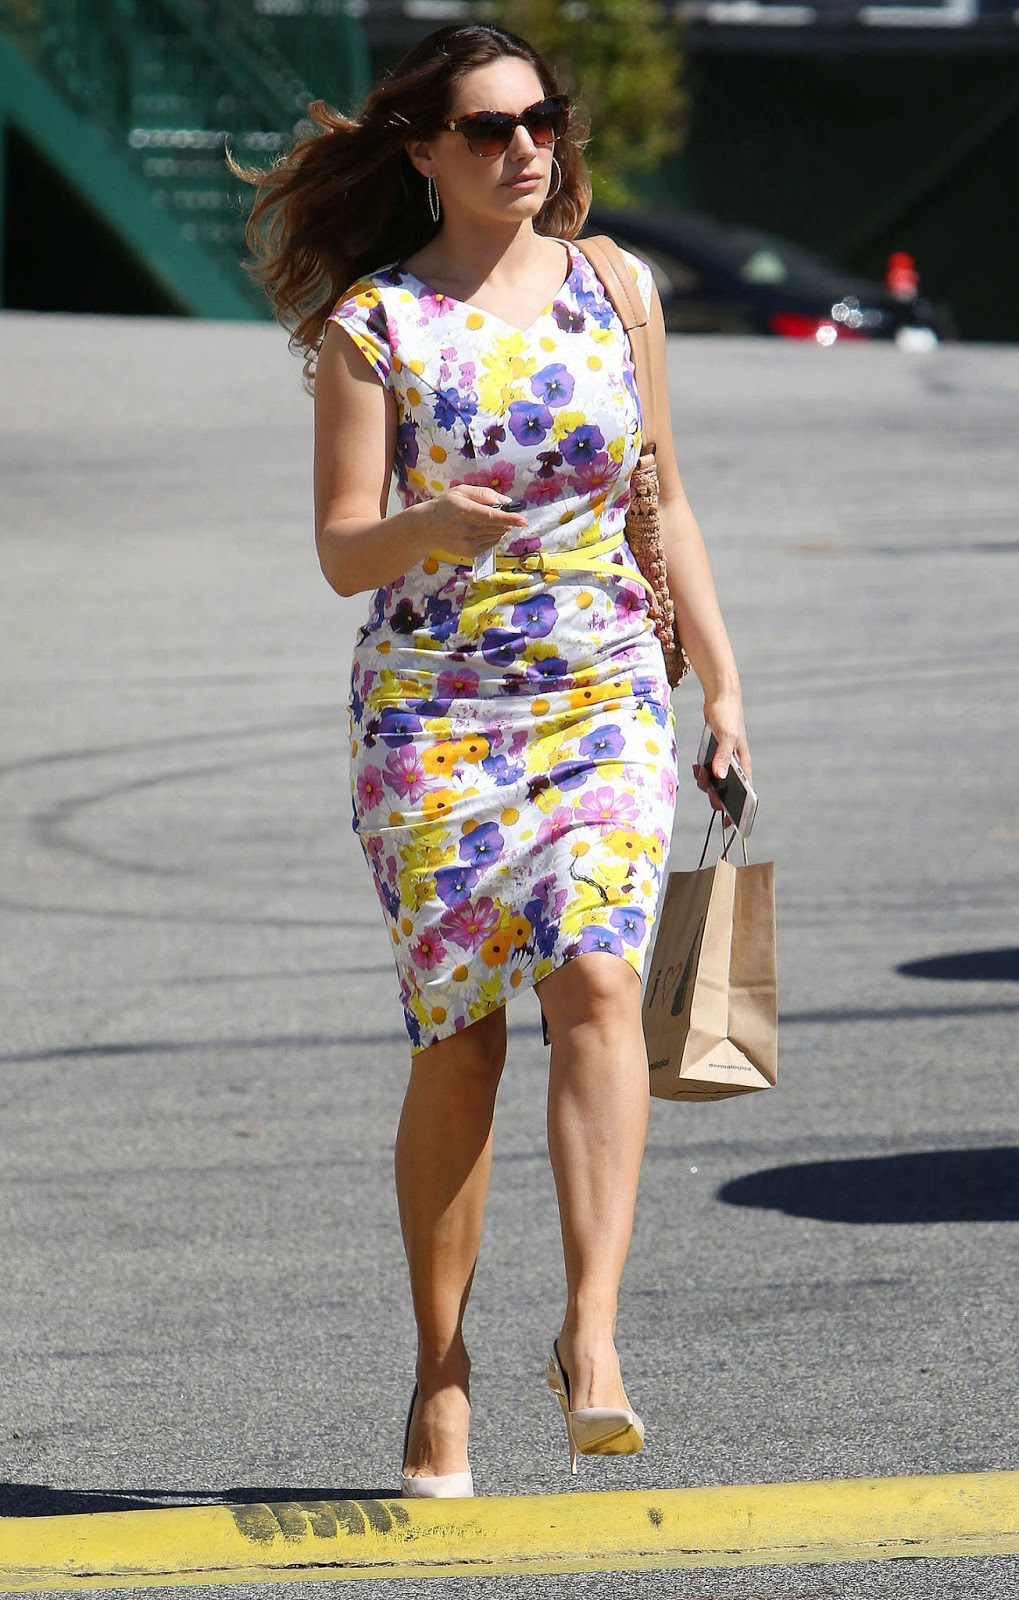 Kelly Brook shows off figure in a fitted floral dress in Hollywood